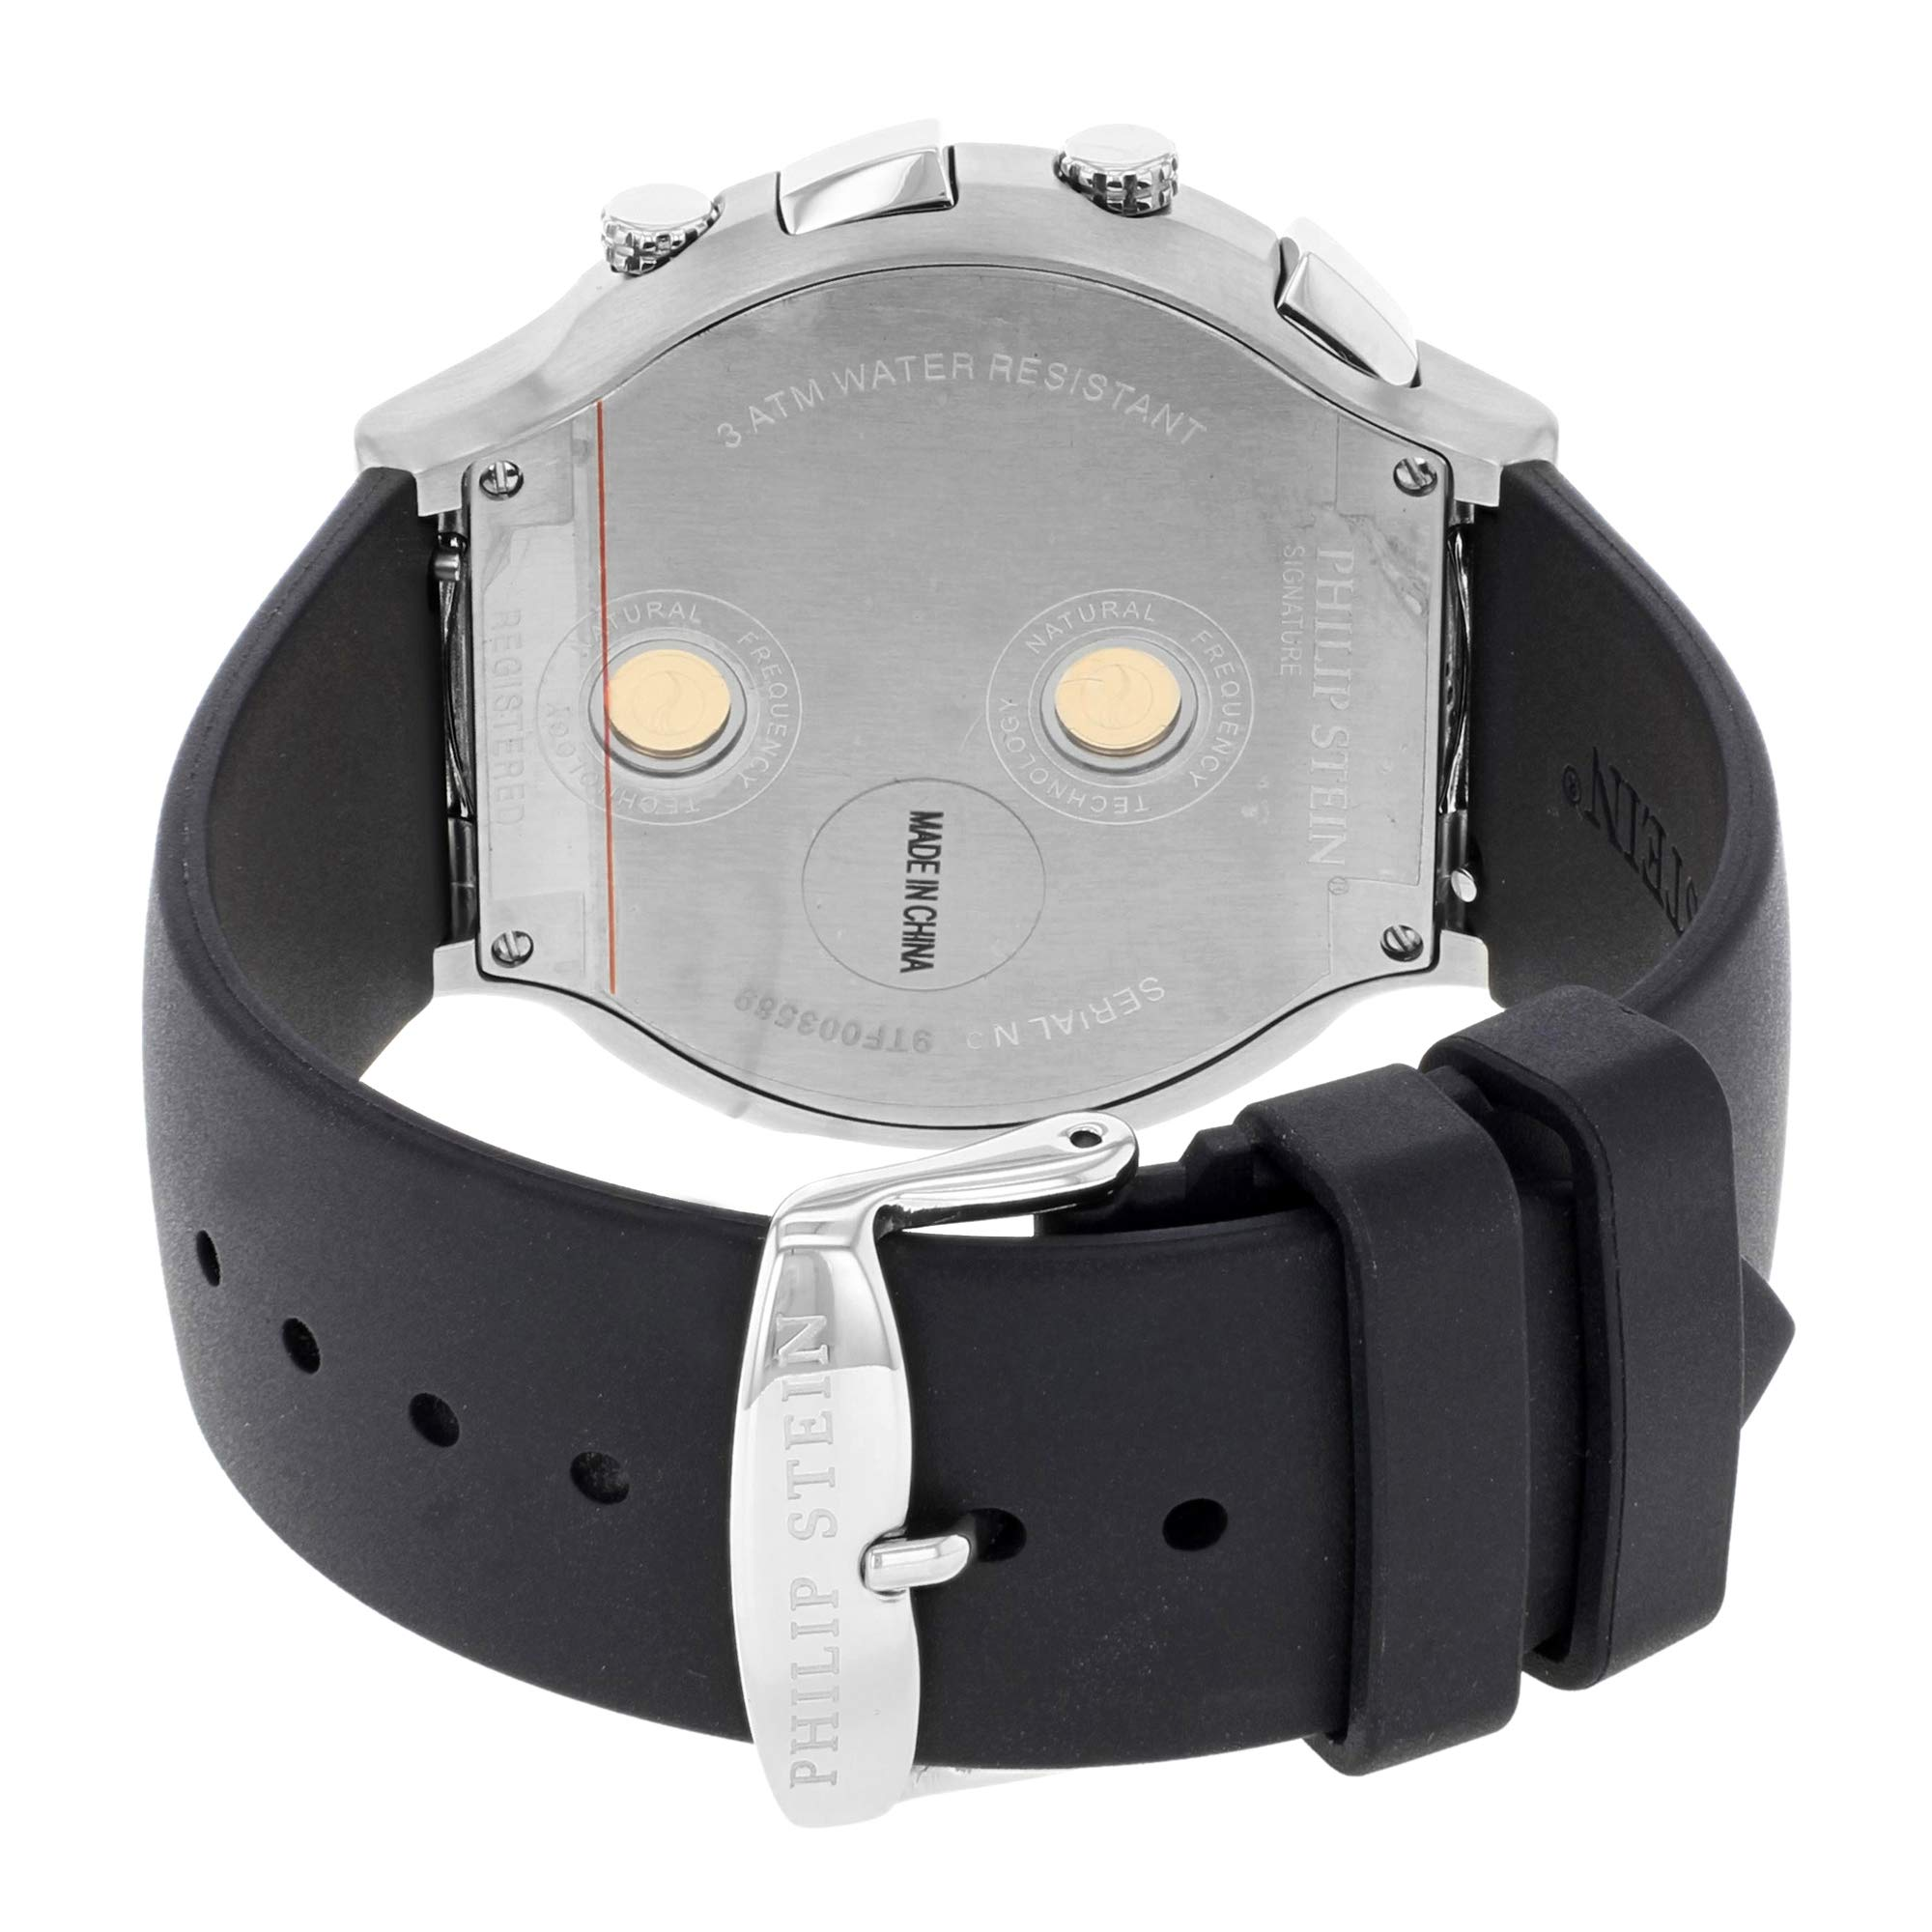 Philip Stein Chrono Analog-Quartz Male Watch 9-CRB3-CB (Certified Pre-Owned) by Philip Stein (Image #4)